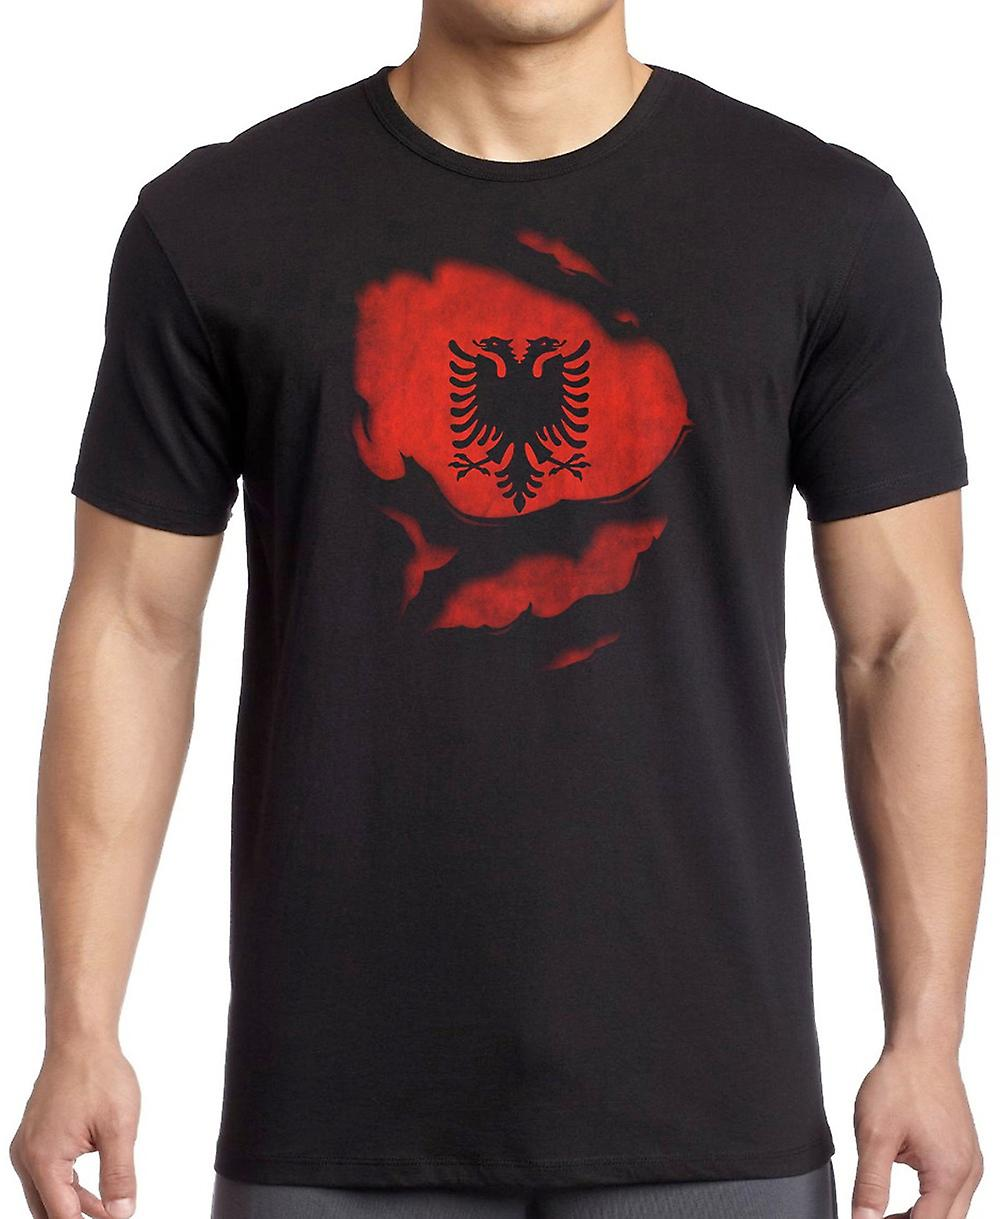 Albanian Albania Ripped Effect Under Shirt Kids T Shirt